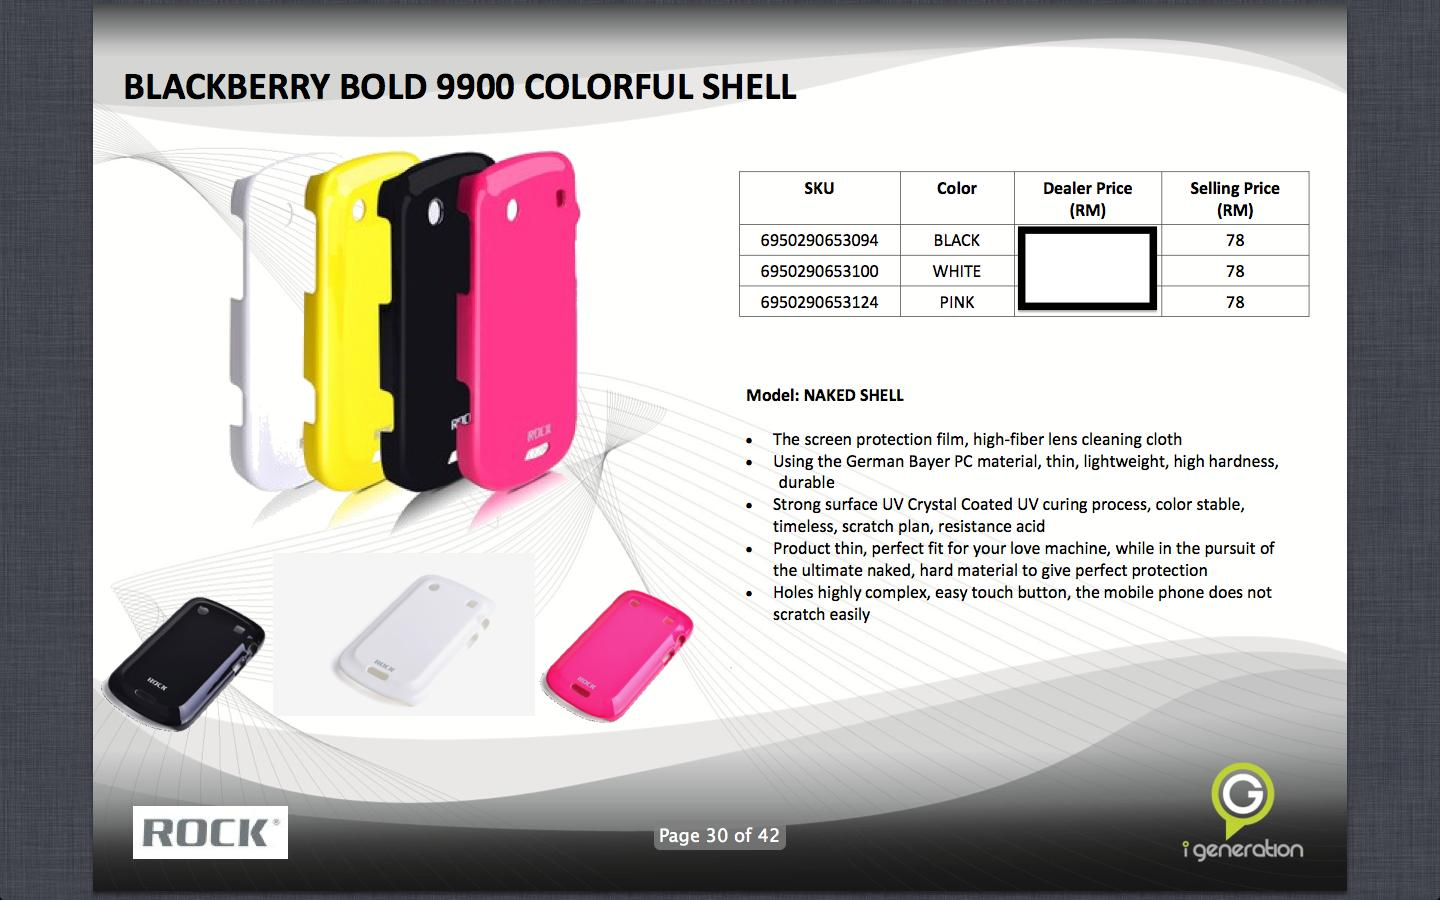 Bdotcom = Blackberry Bold Touch 9900 = ROCK Colorful Naked Shell